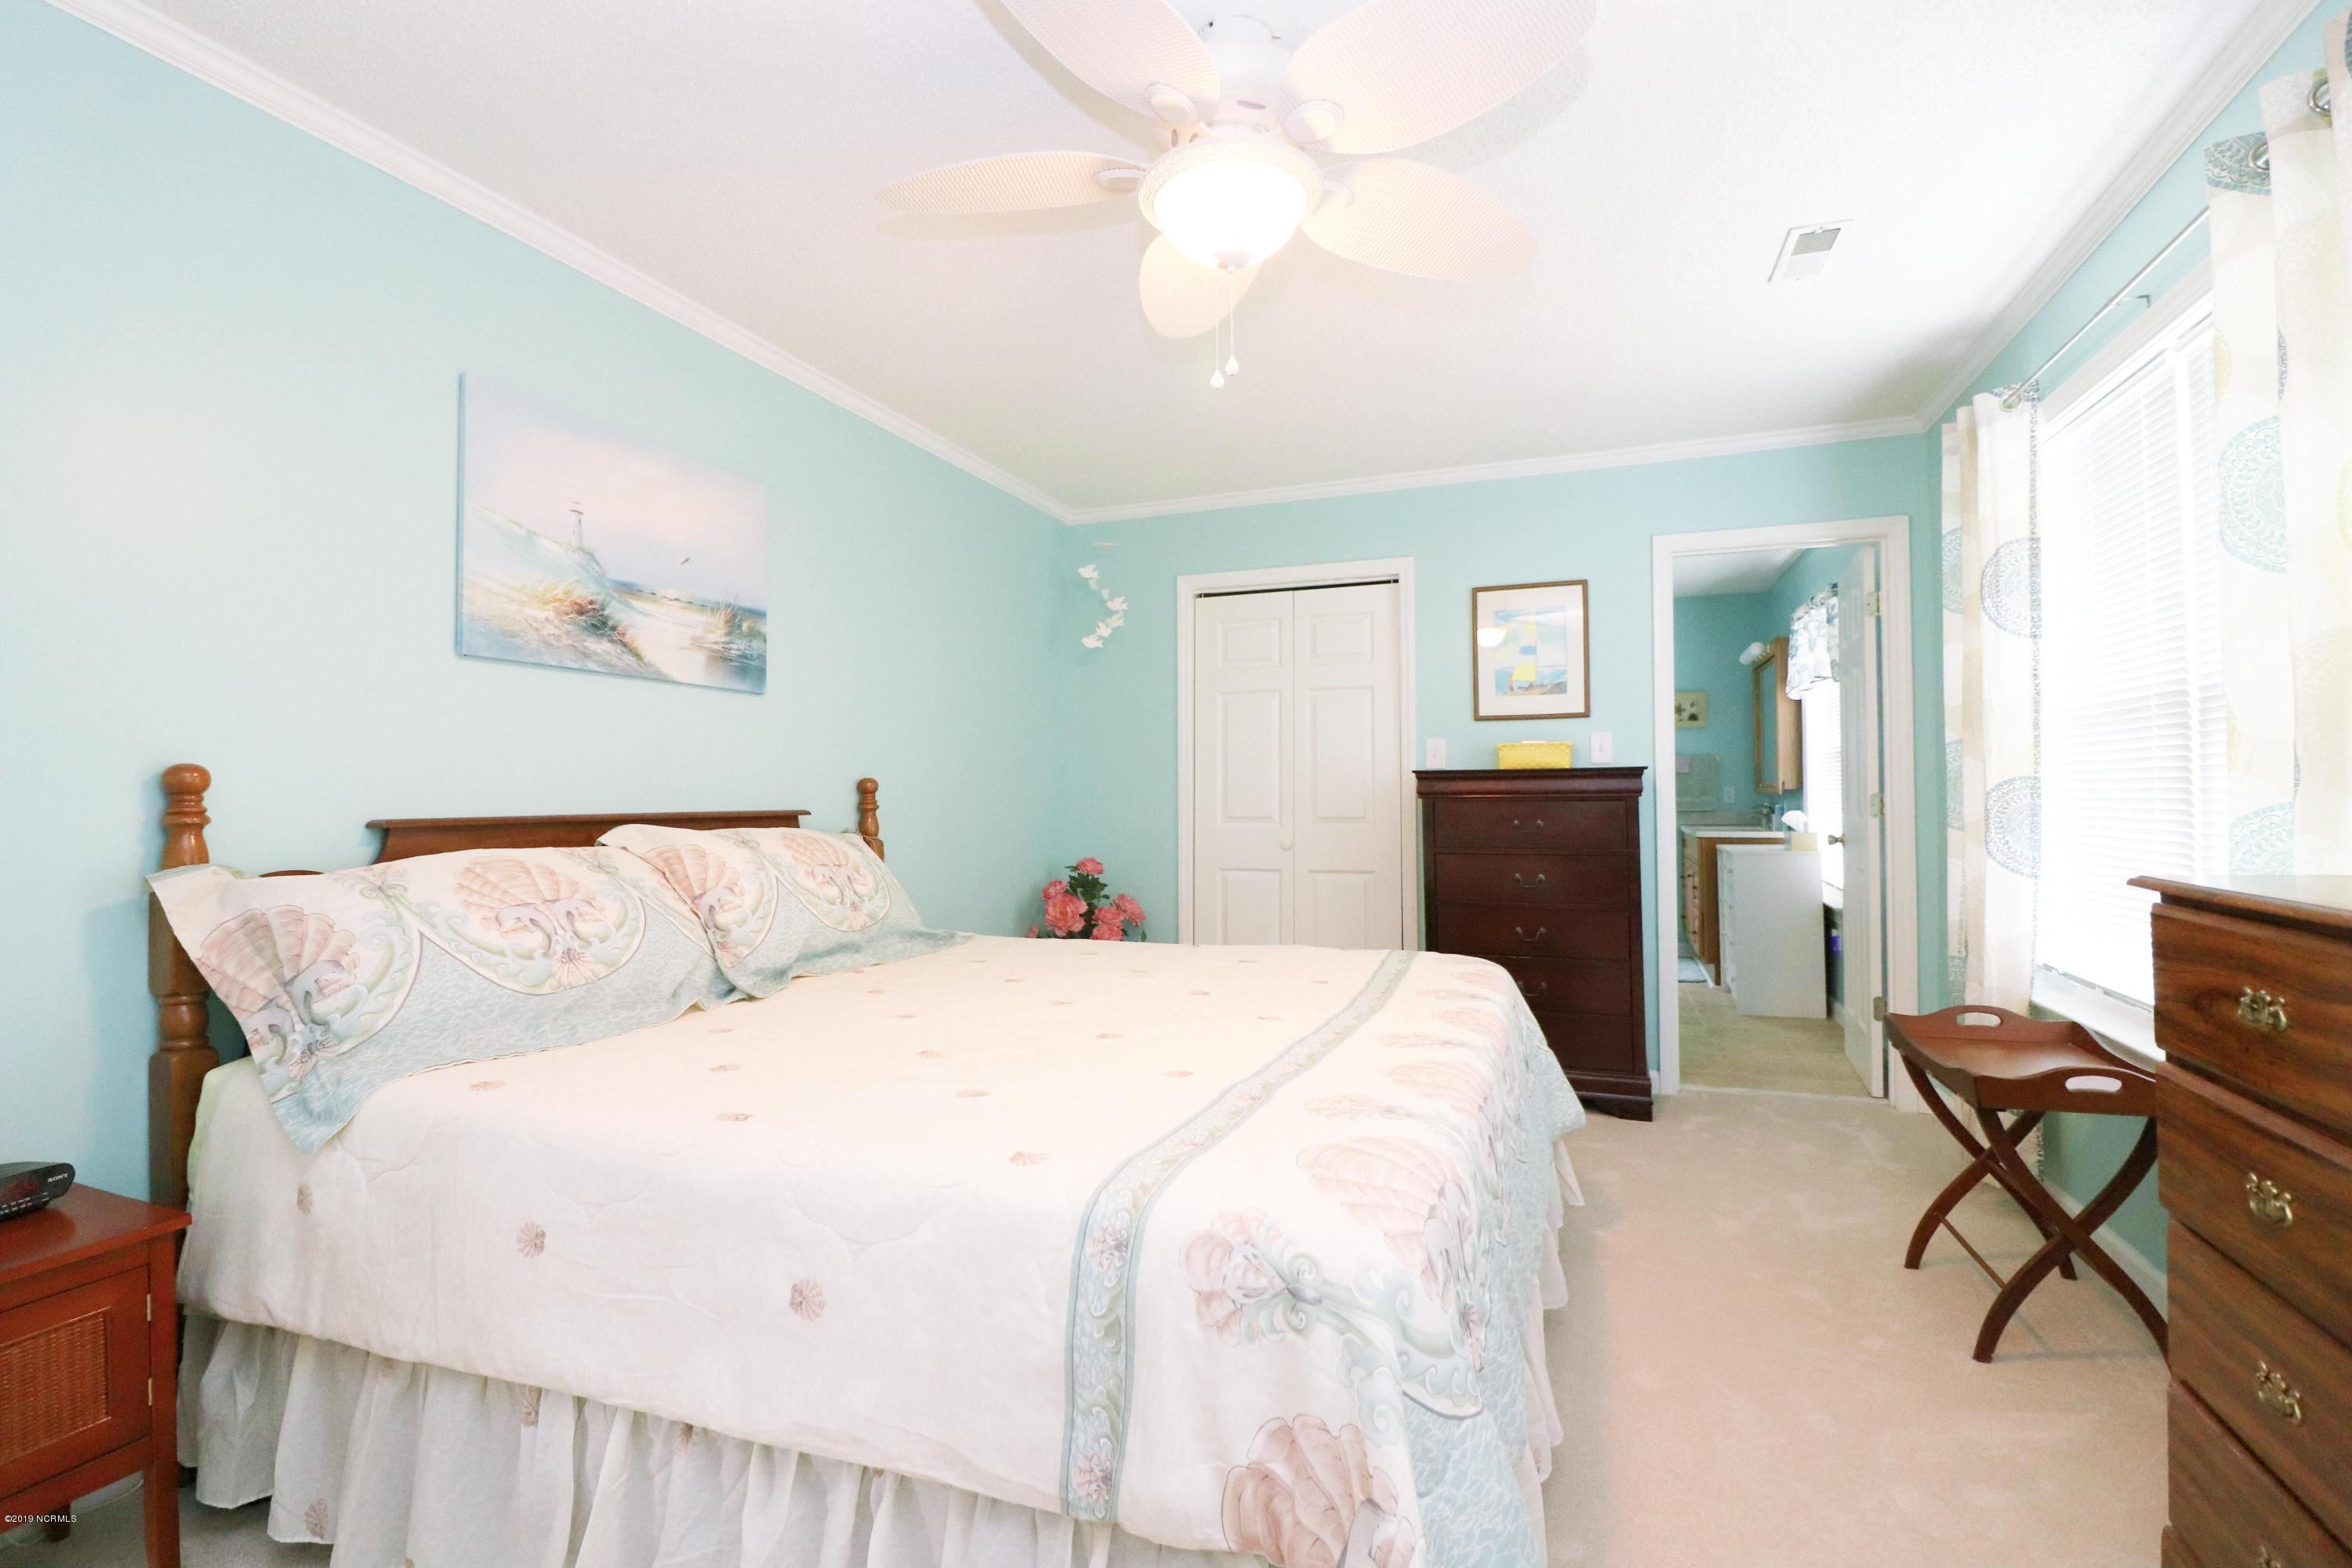 175 Salty Shores Point Drive, Newport, North Carolina 28570, 3 Bedrooms Bedrooms, 5 Rooms Rooms,2 BathroomsBathrooms,Single family residence,For sale,Salty Shores Point,100179285